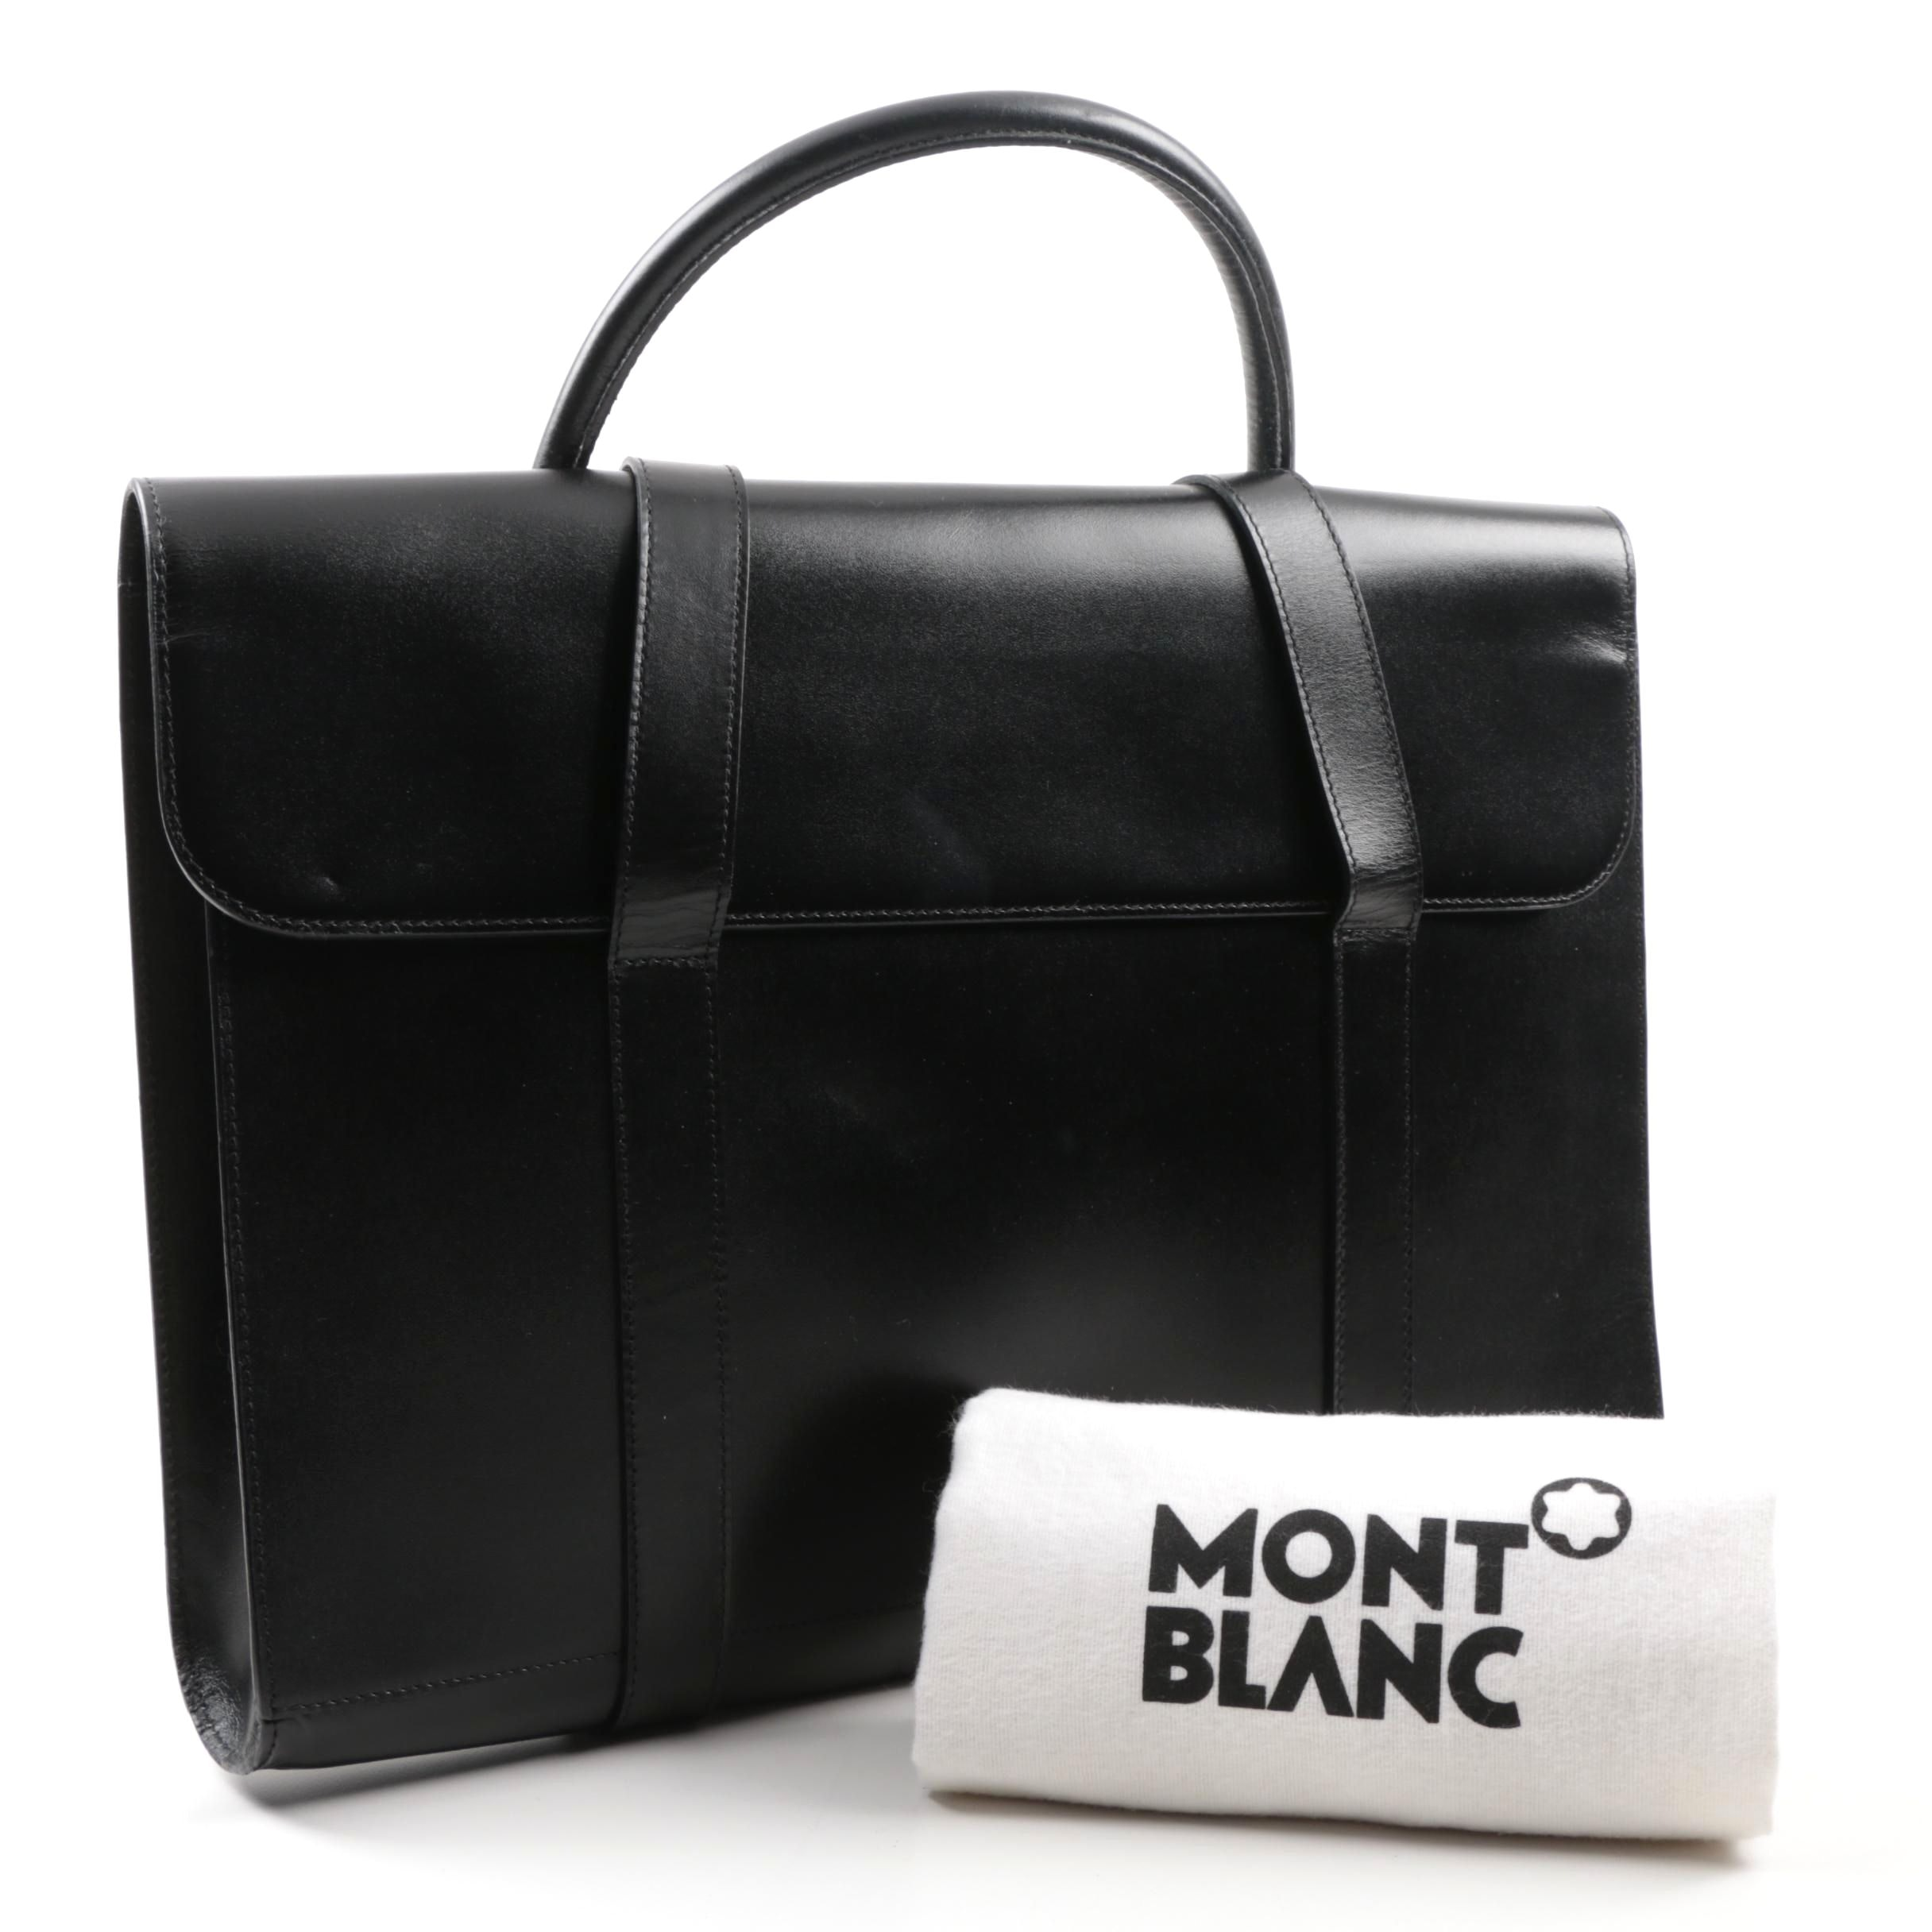 Mont Blanc Black Leather Briefcase with Gold Bar, Made in Germany